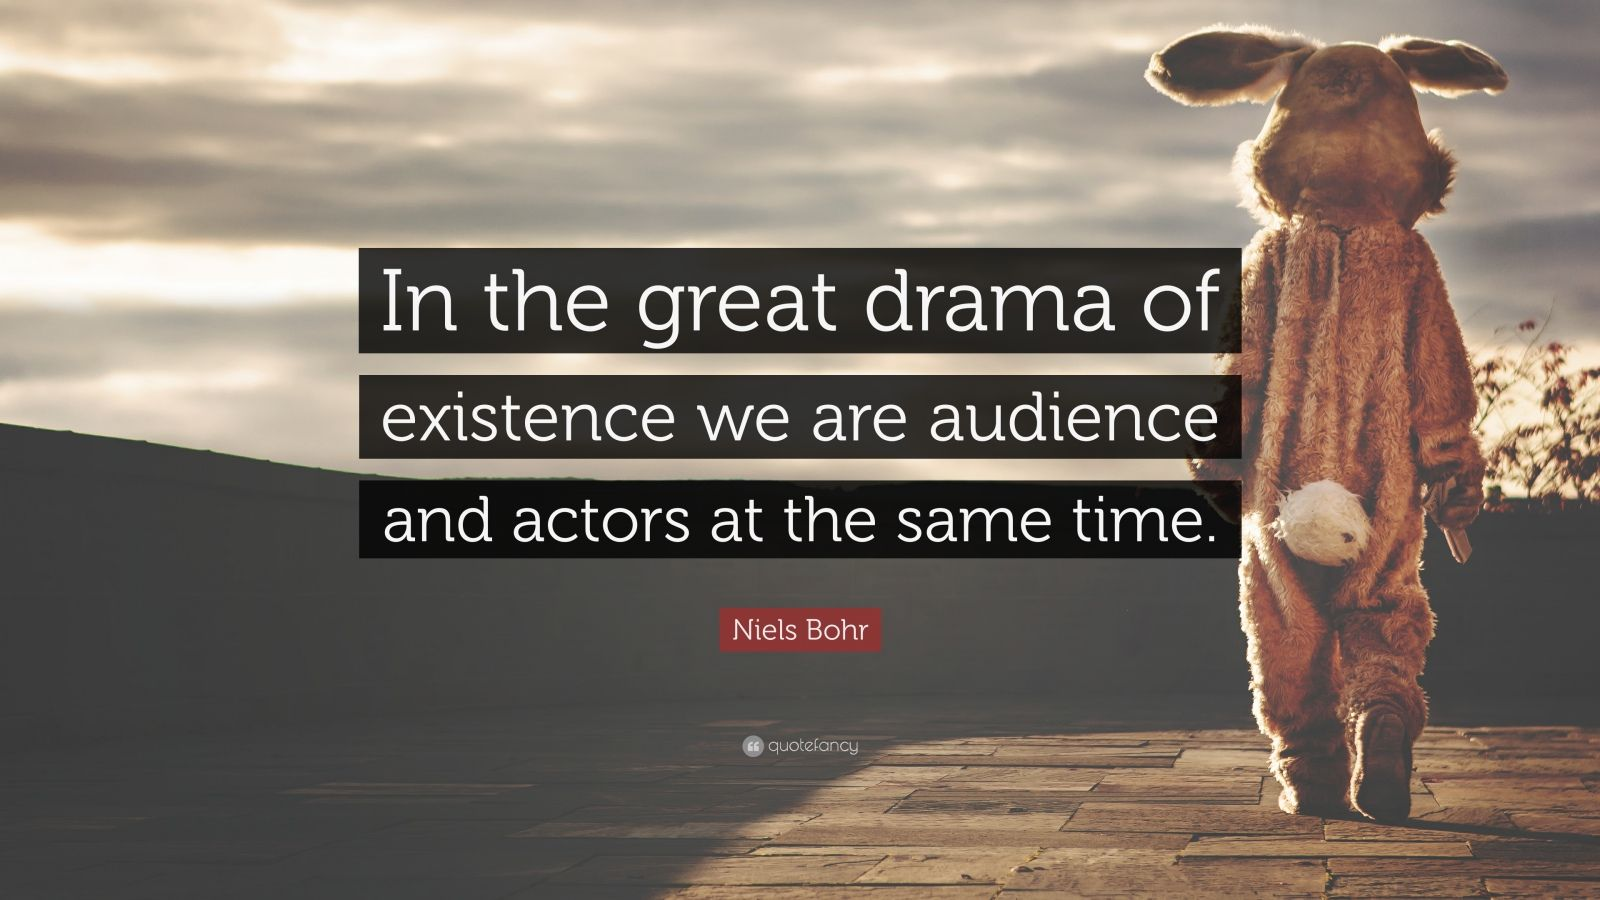 """Niels Bohr Quote: """"In the great drama of existence we are audience and actors at the same time."""""""